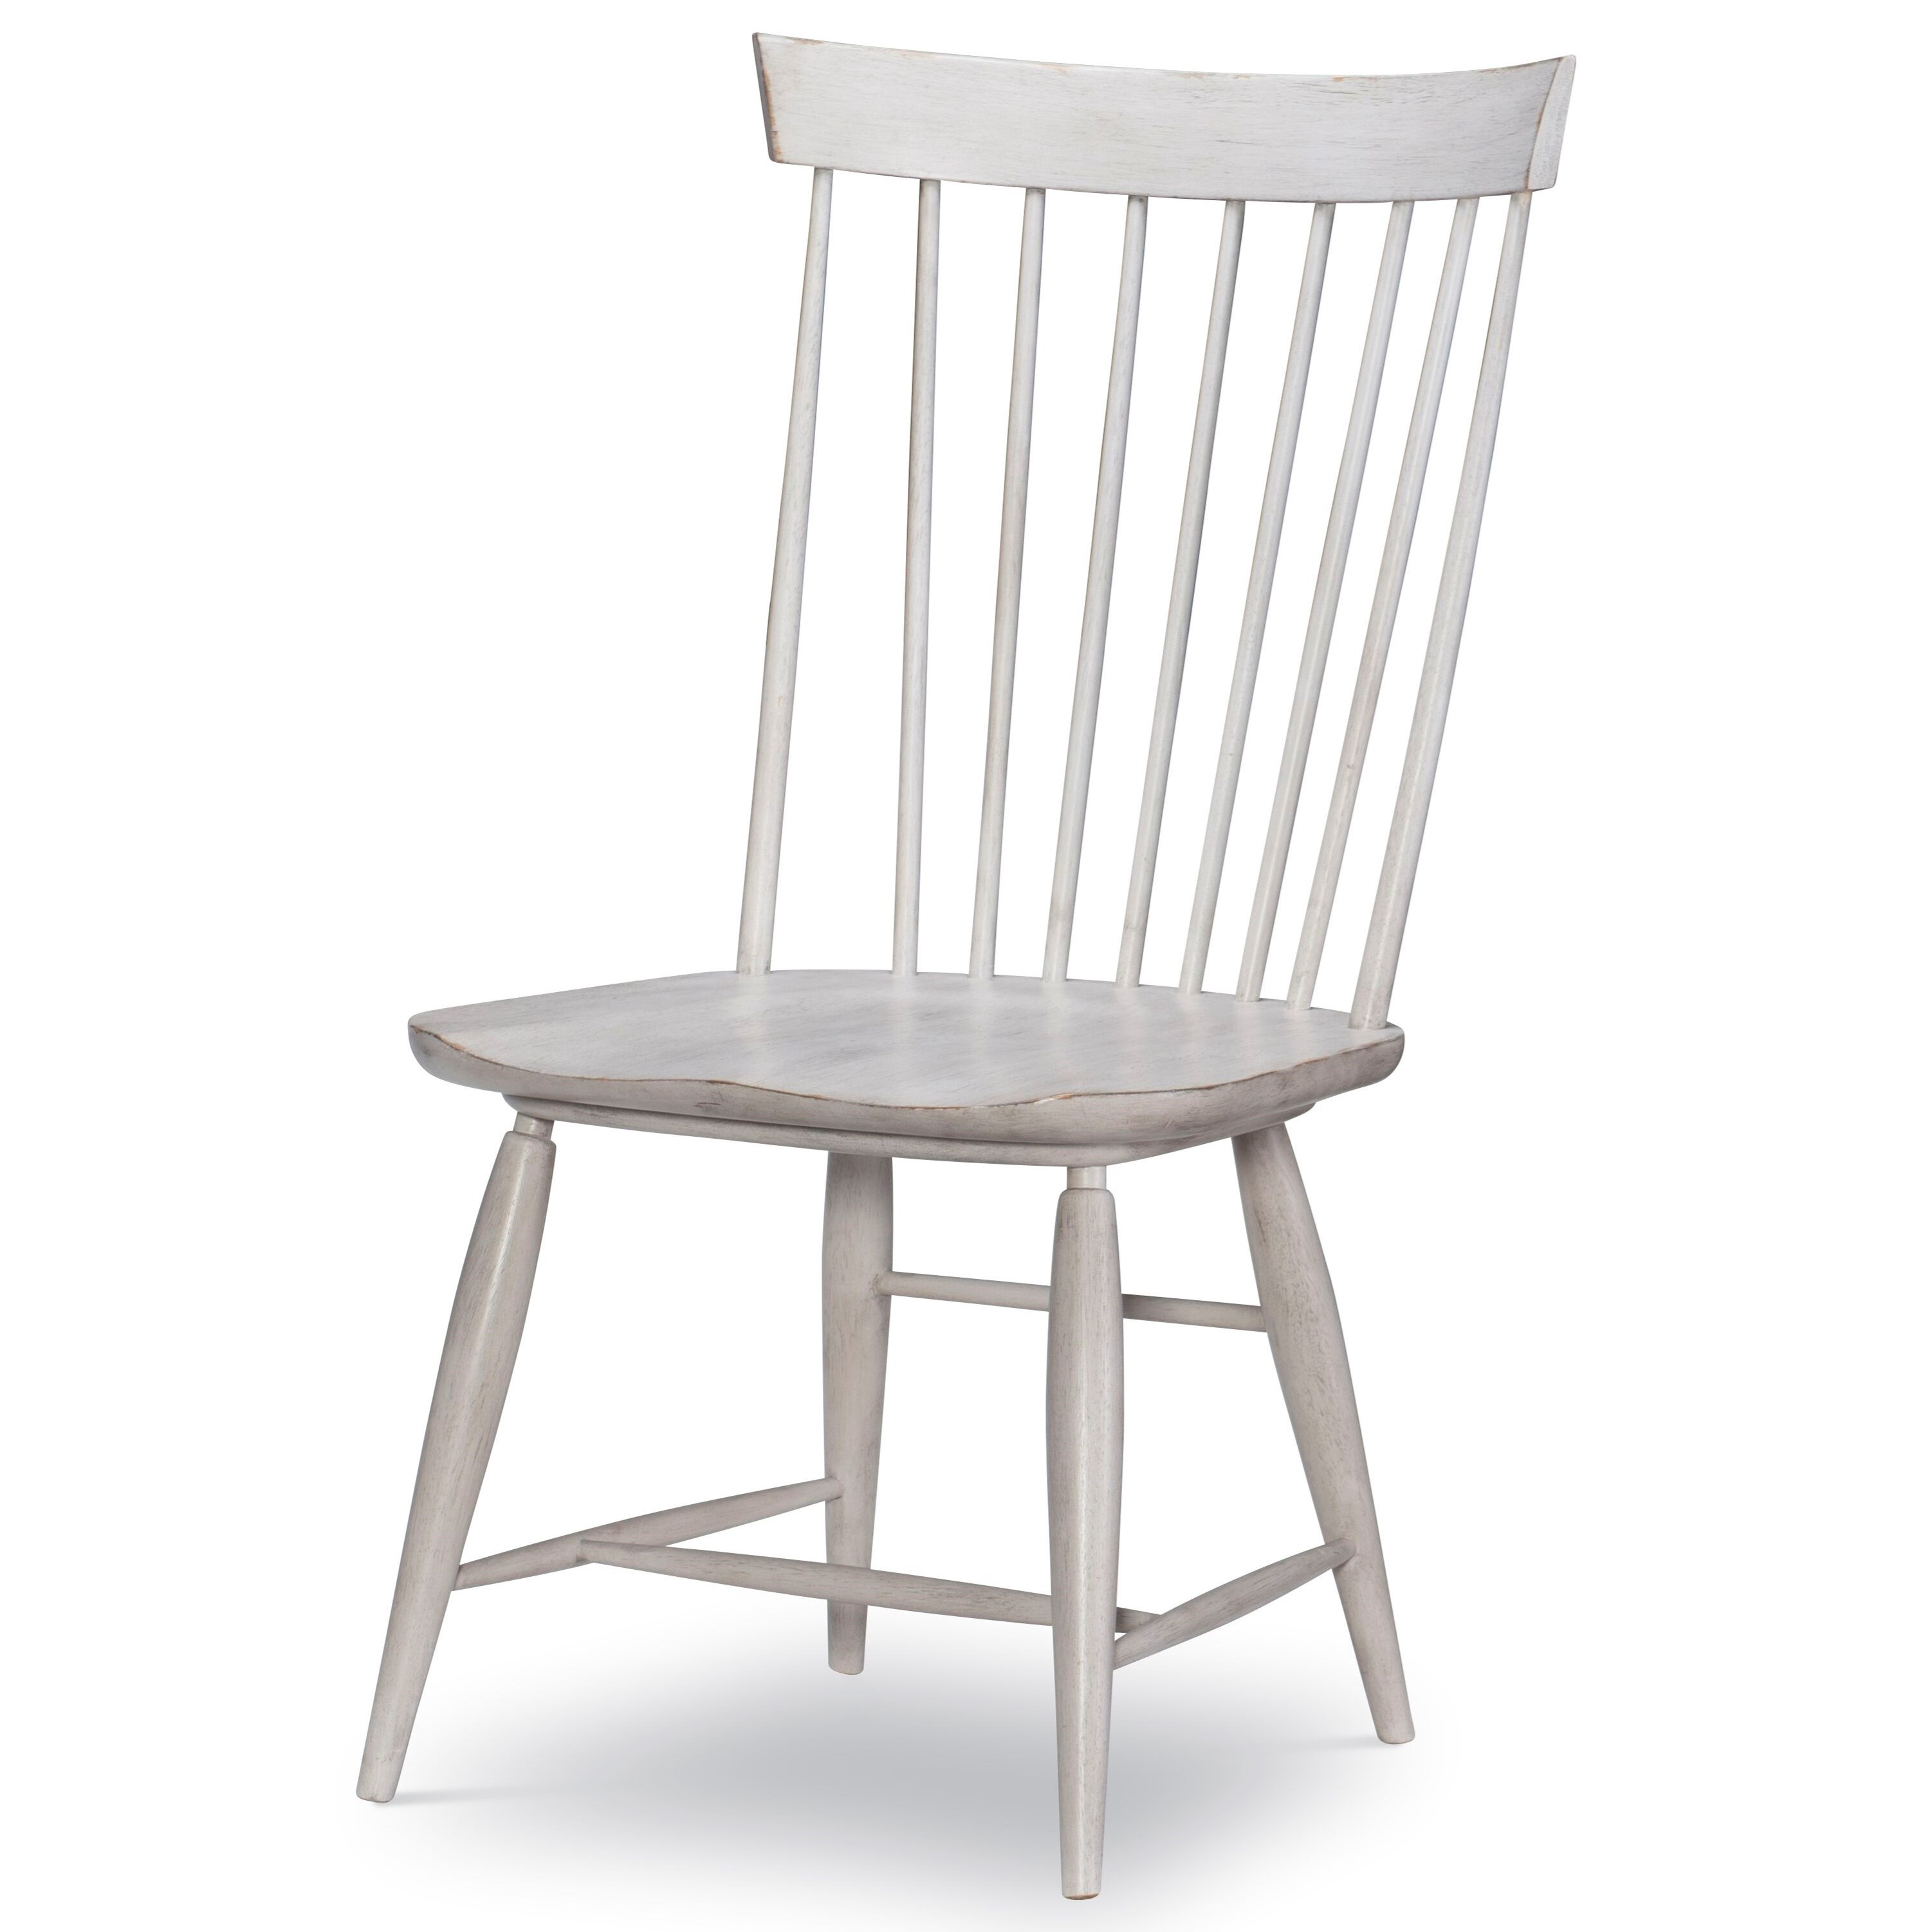 Belhaven Windsor Side Chair by Legacy Classic at Crowley Furniture & Mattress